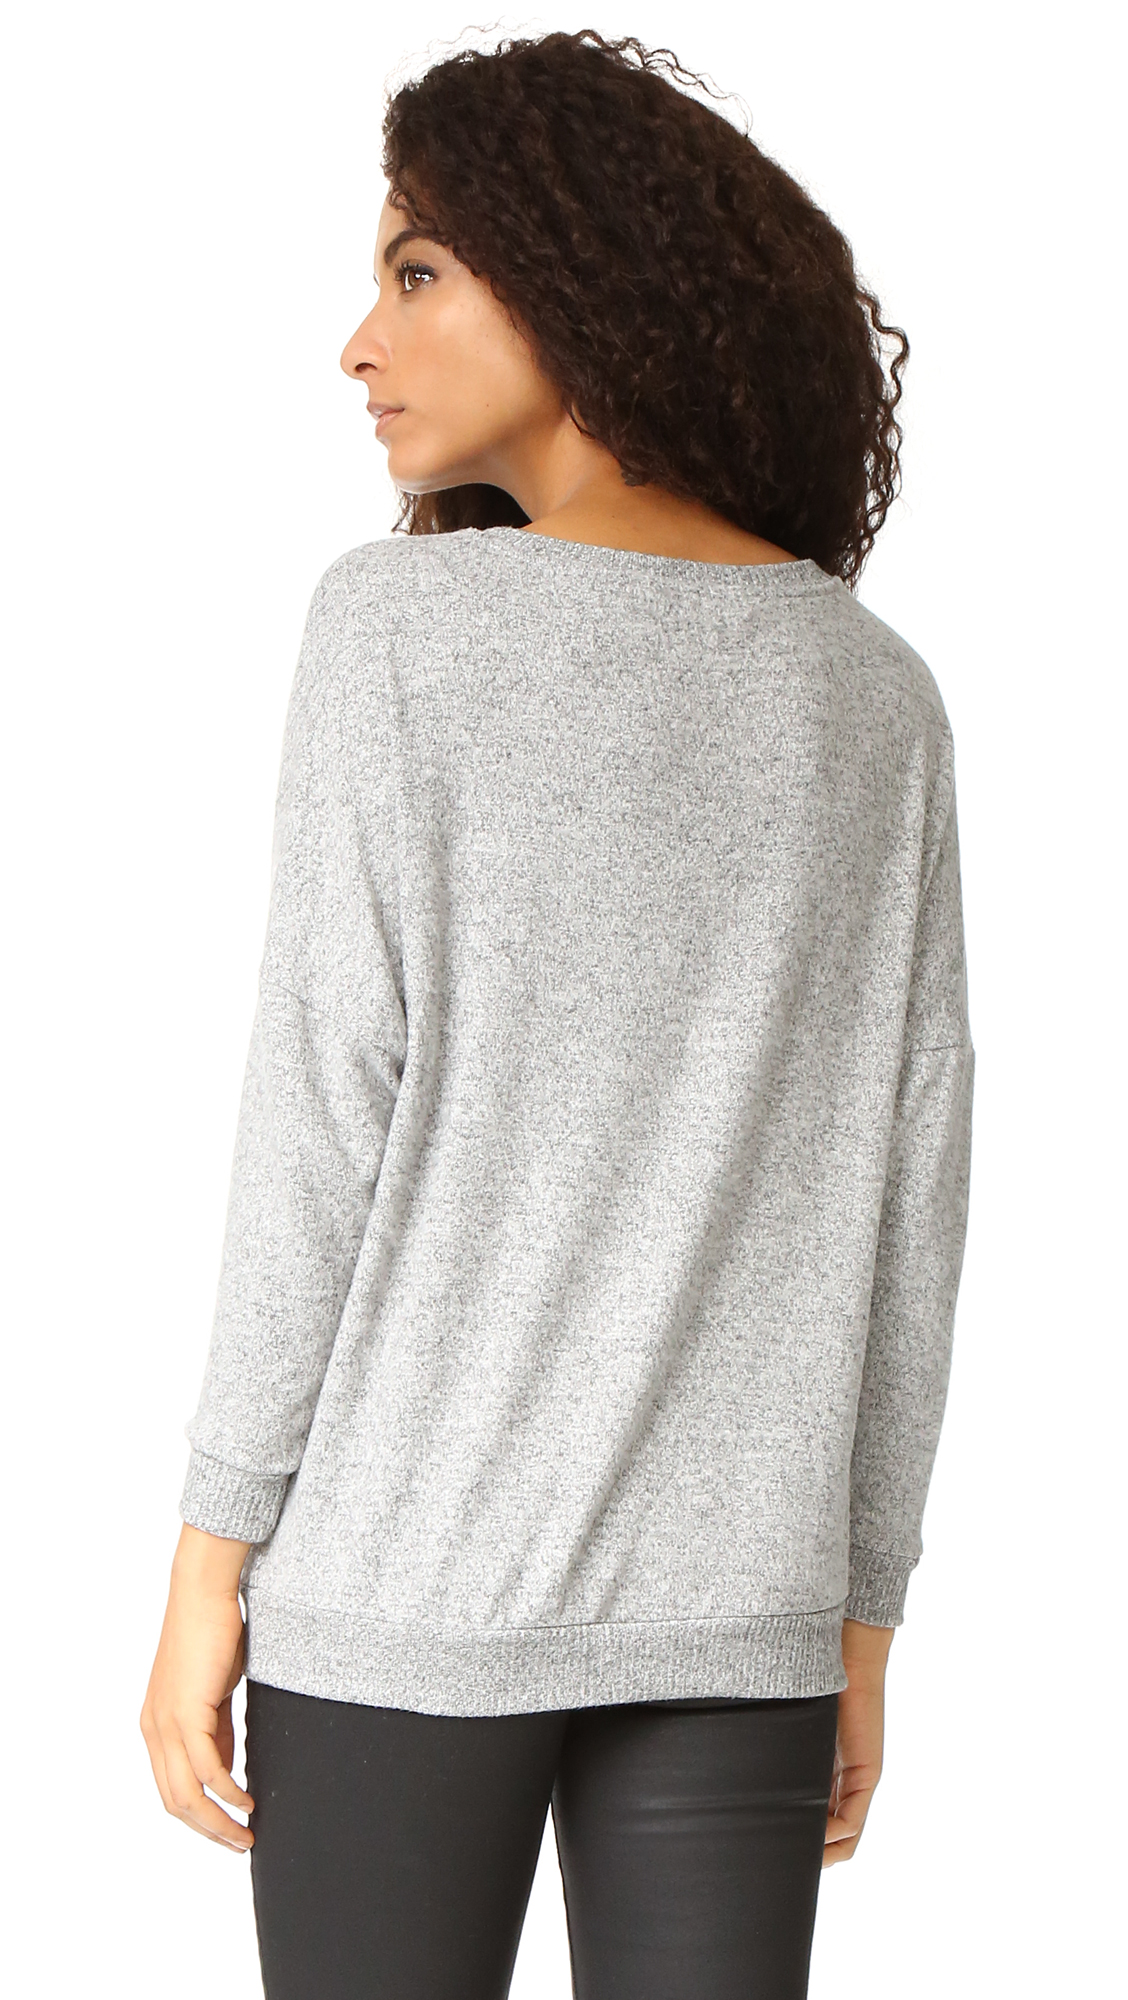 c0596f571d9a1b Soft Joie Giardia Pullover